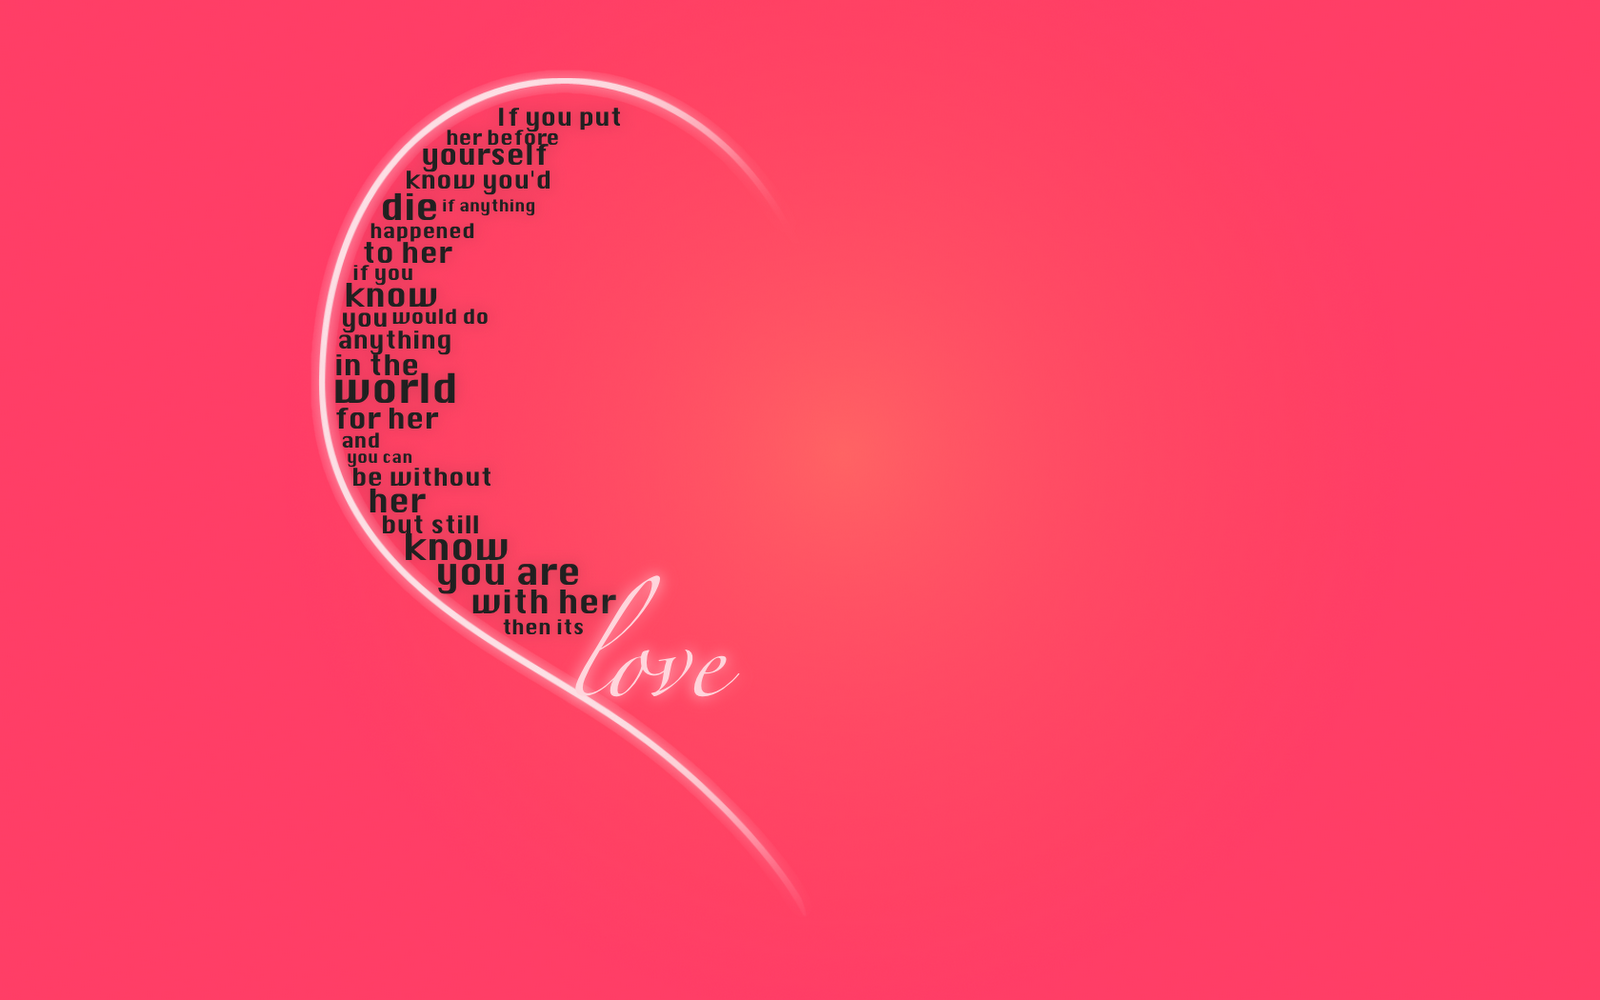 love-quote.png